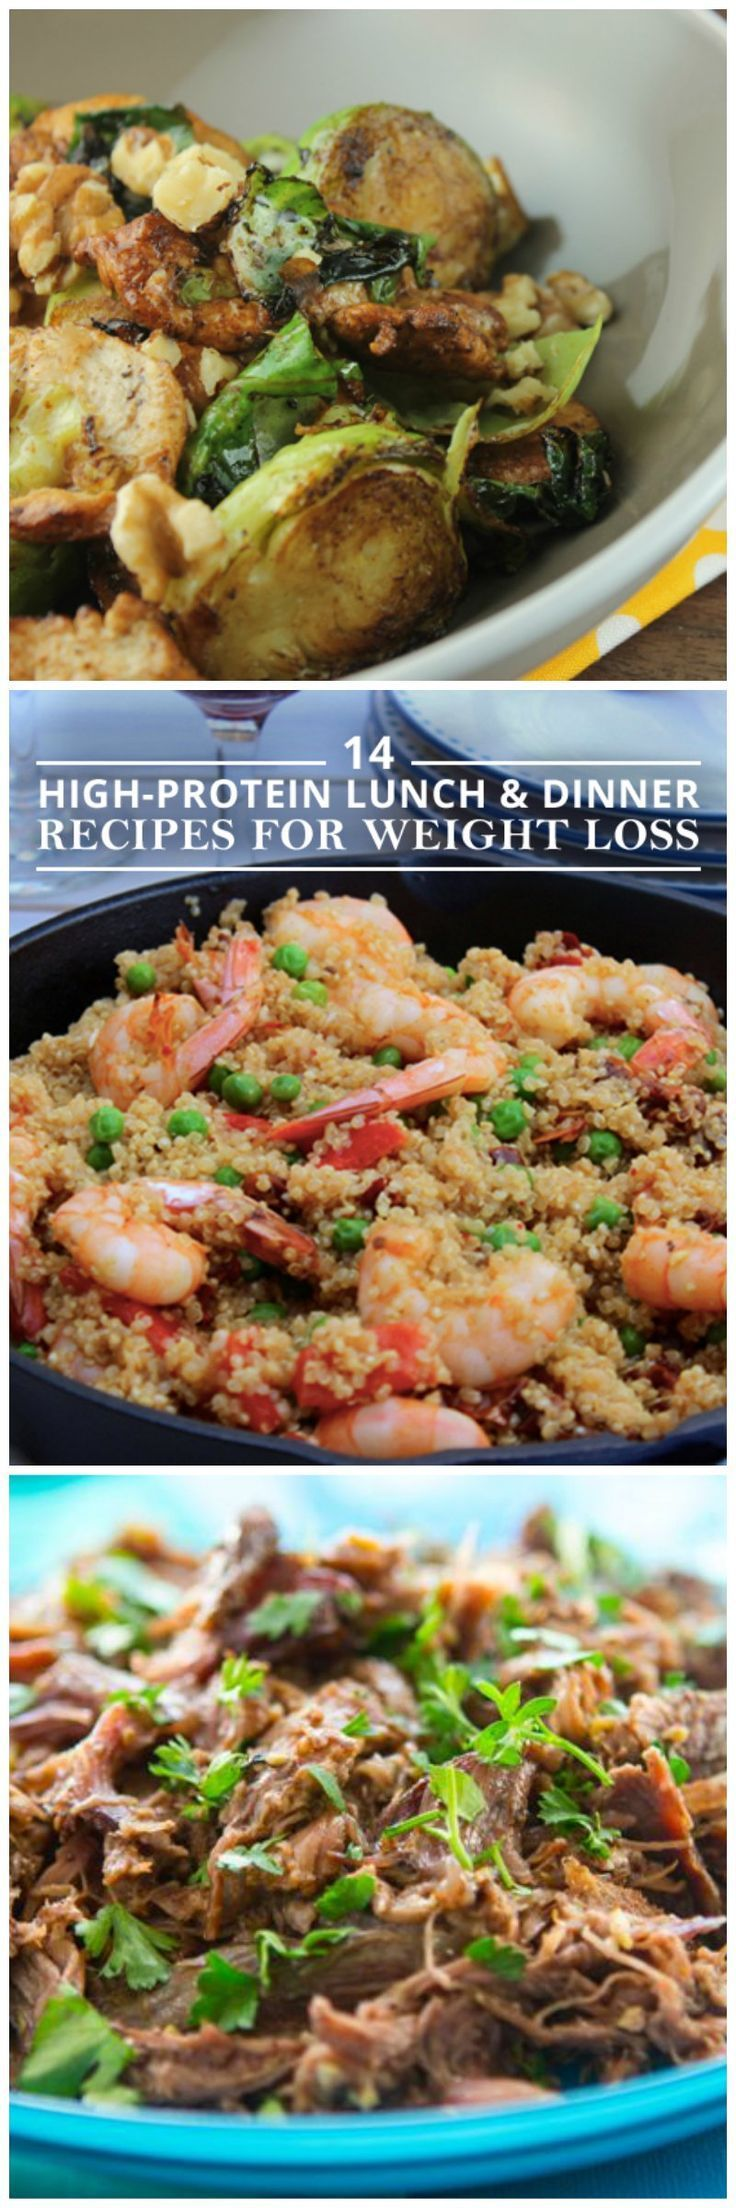 Best 25 Protein lunch ideas on Pinterest High protein recipes